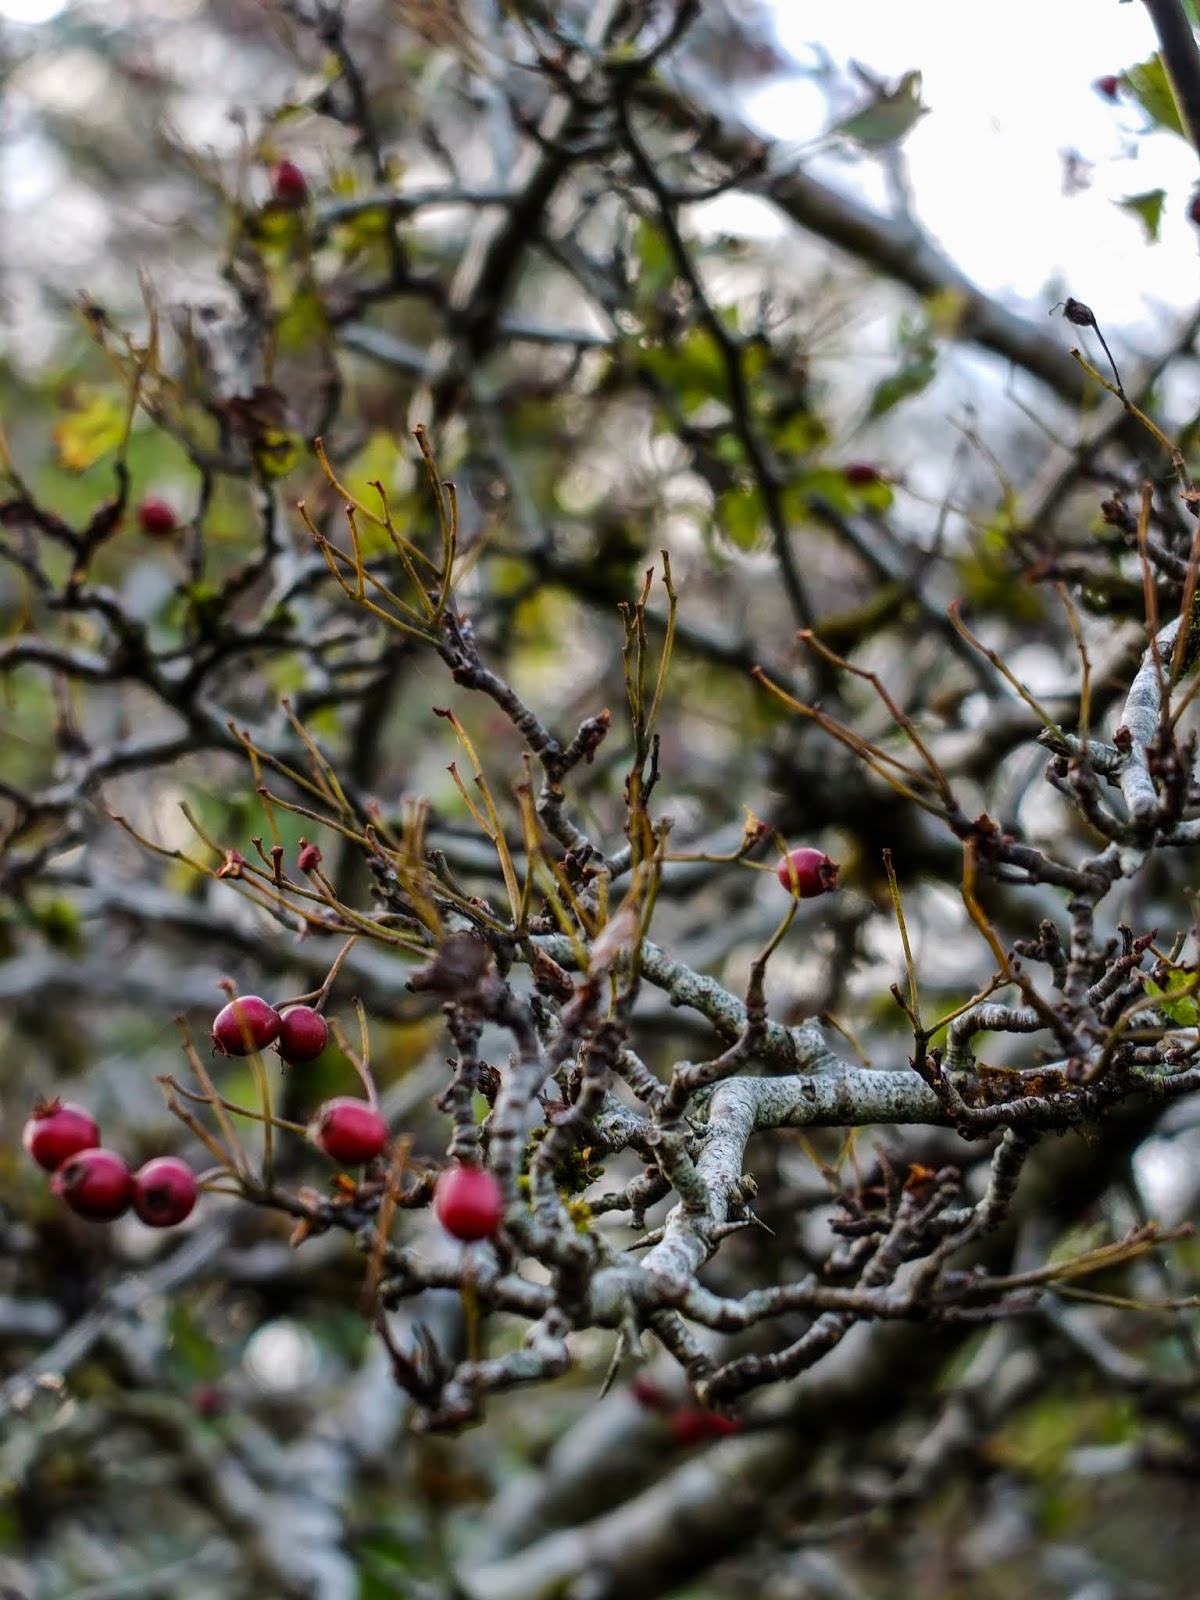 Almost bare branches of a hawthorn tree and some red berries.